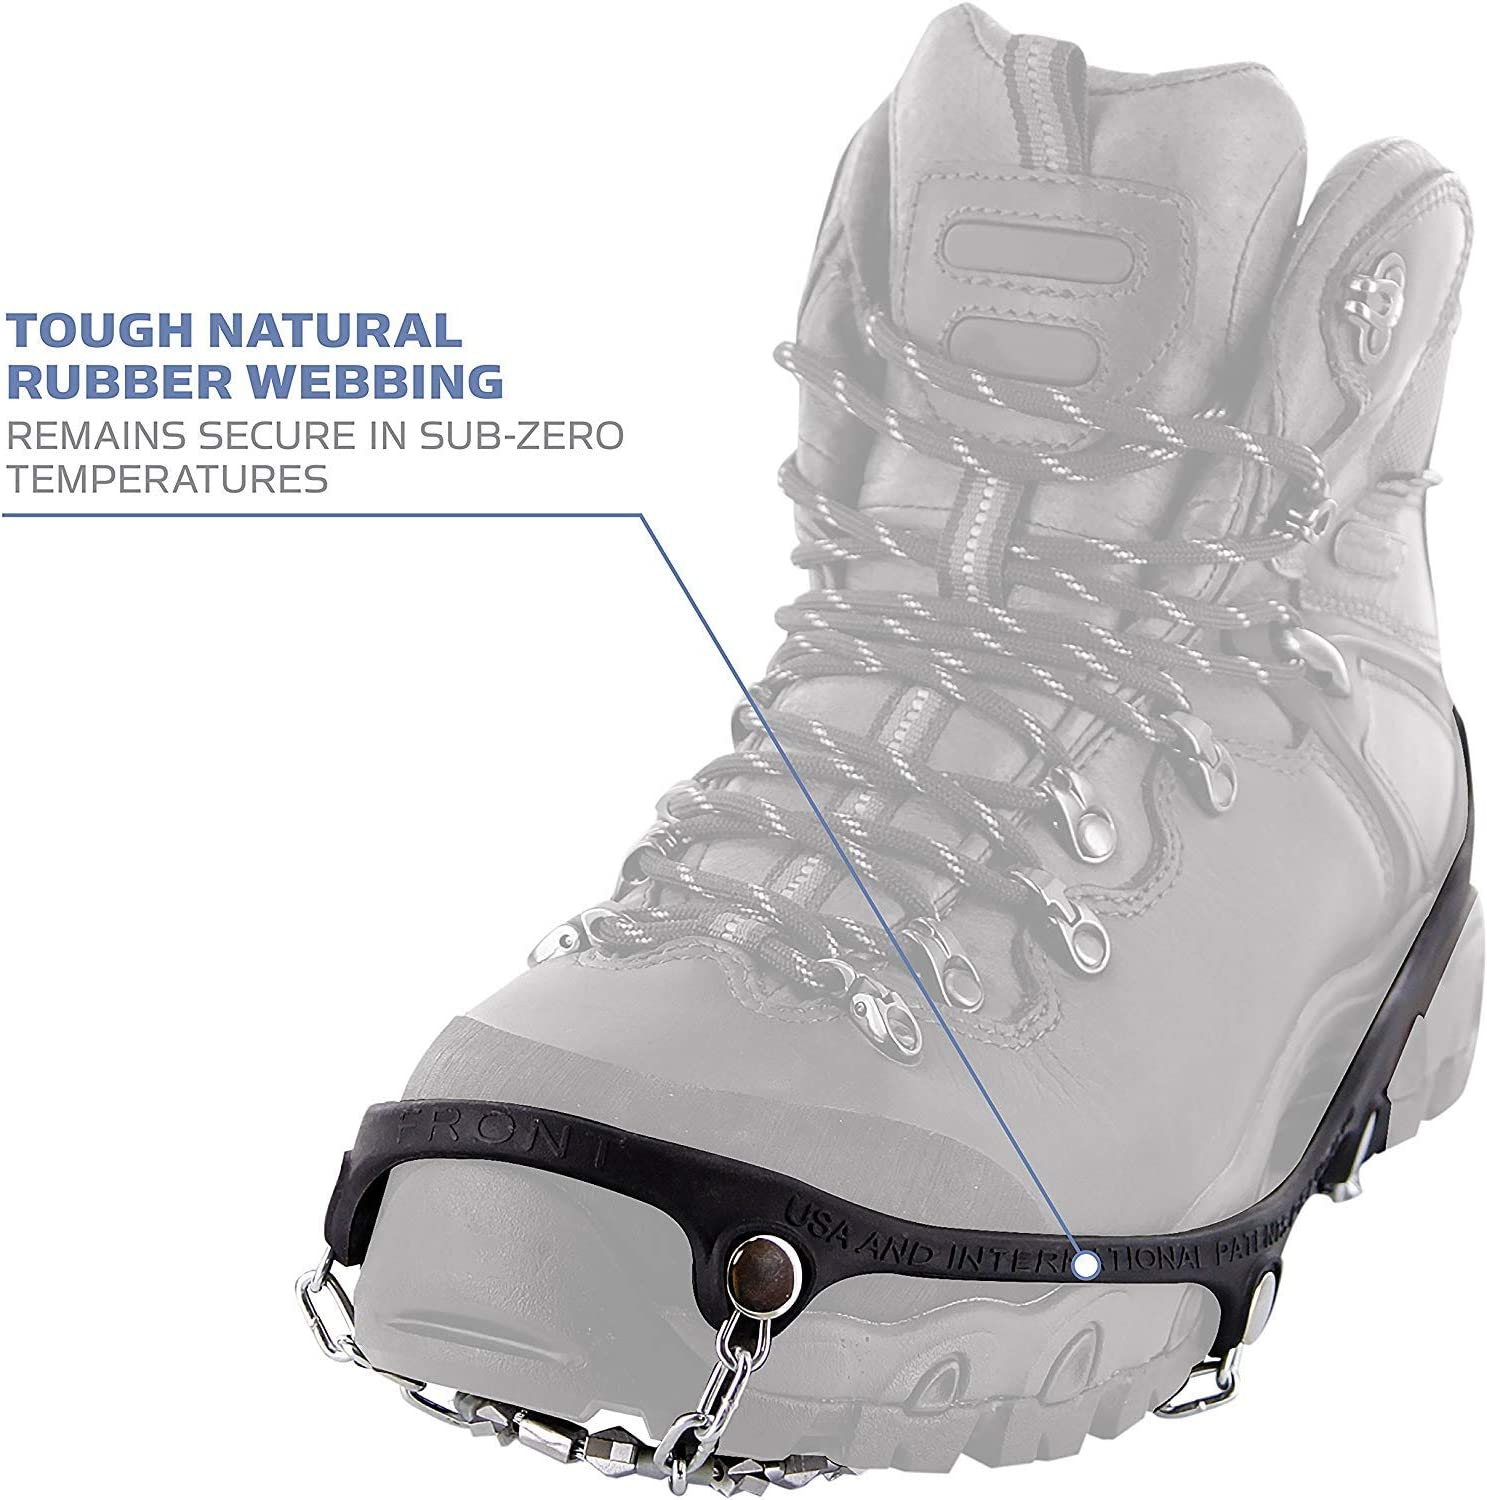 2 Pair w//Micro Sam Salamon Cloth Yaktrax Diamond Grip All-Surface Traction Cleats for Walking on Ice and Snow